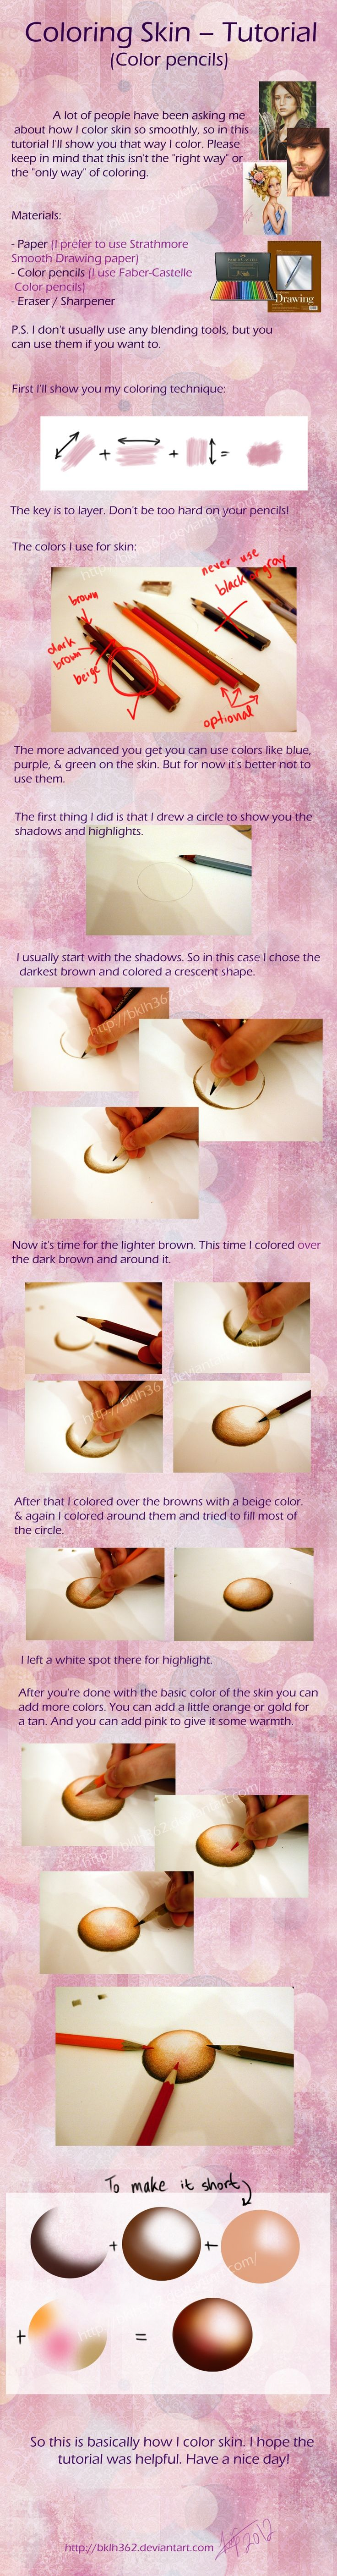 Coloring Skin (Color pencils tutorial) by *BKLH362 on deviantART